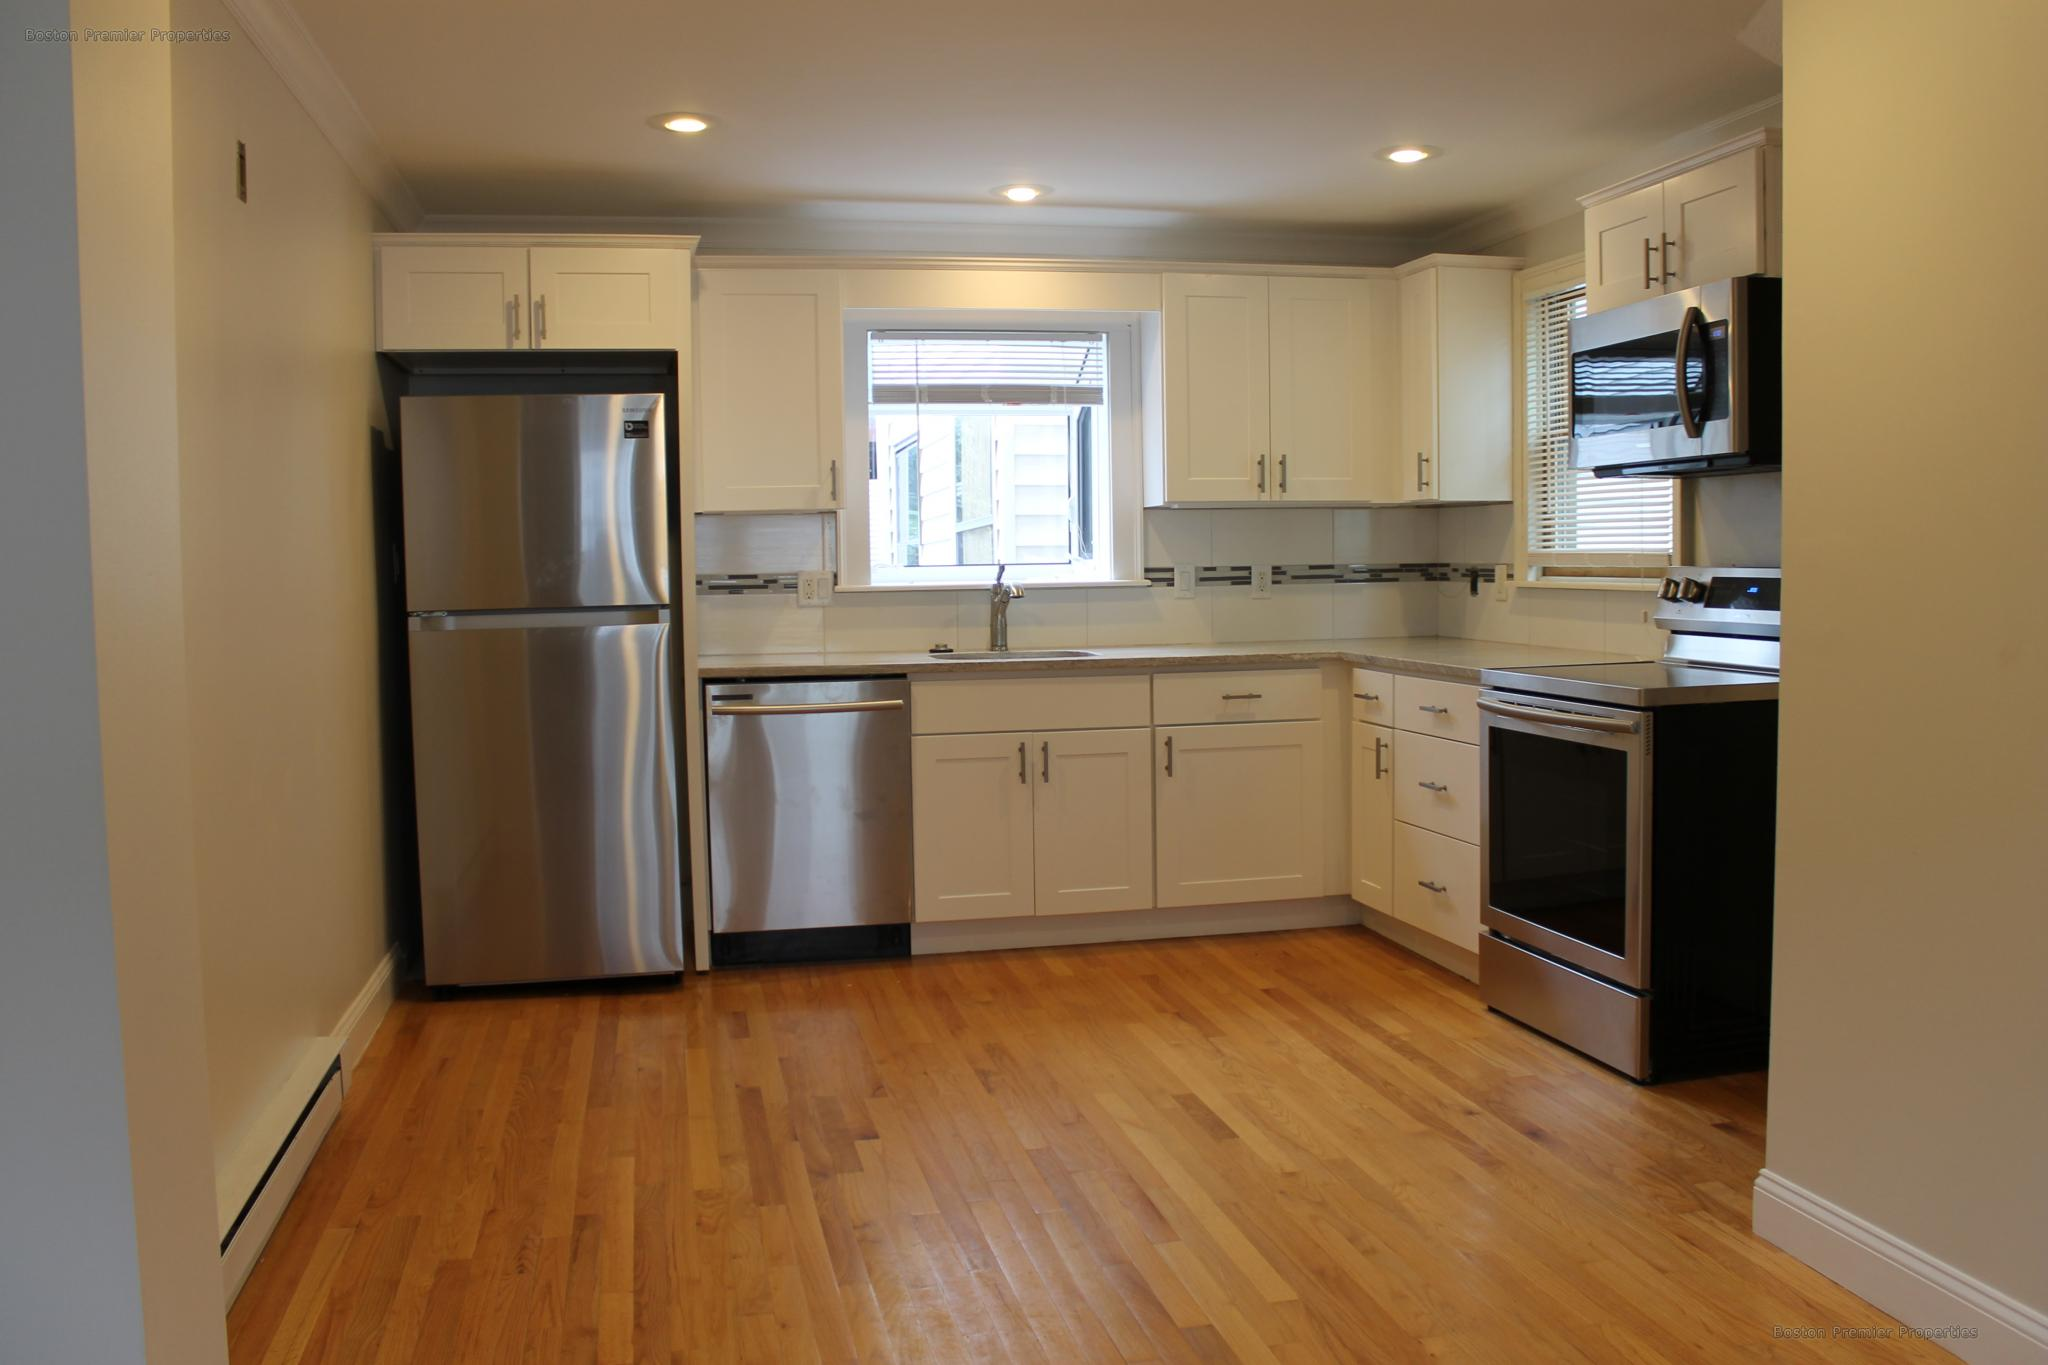 RECENTLY RENOVATED S BOSTON 2BR ~IN UNIT LAUNDRY, WALK TO BEACH